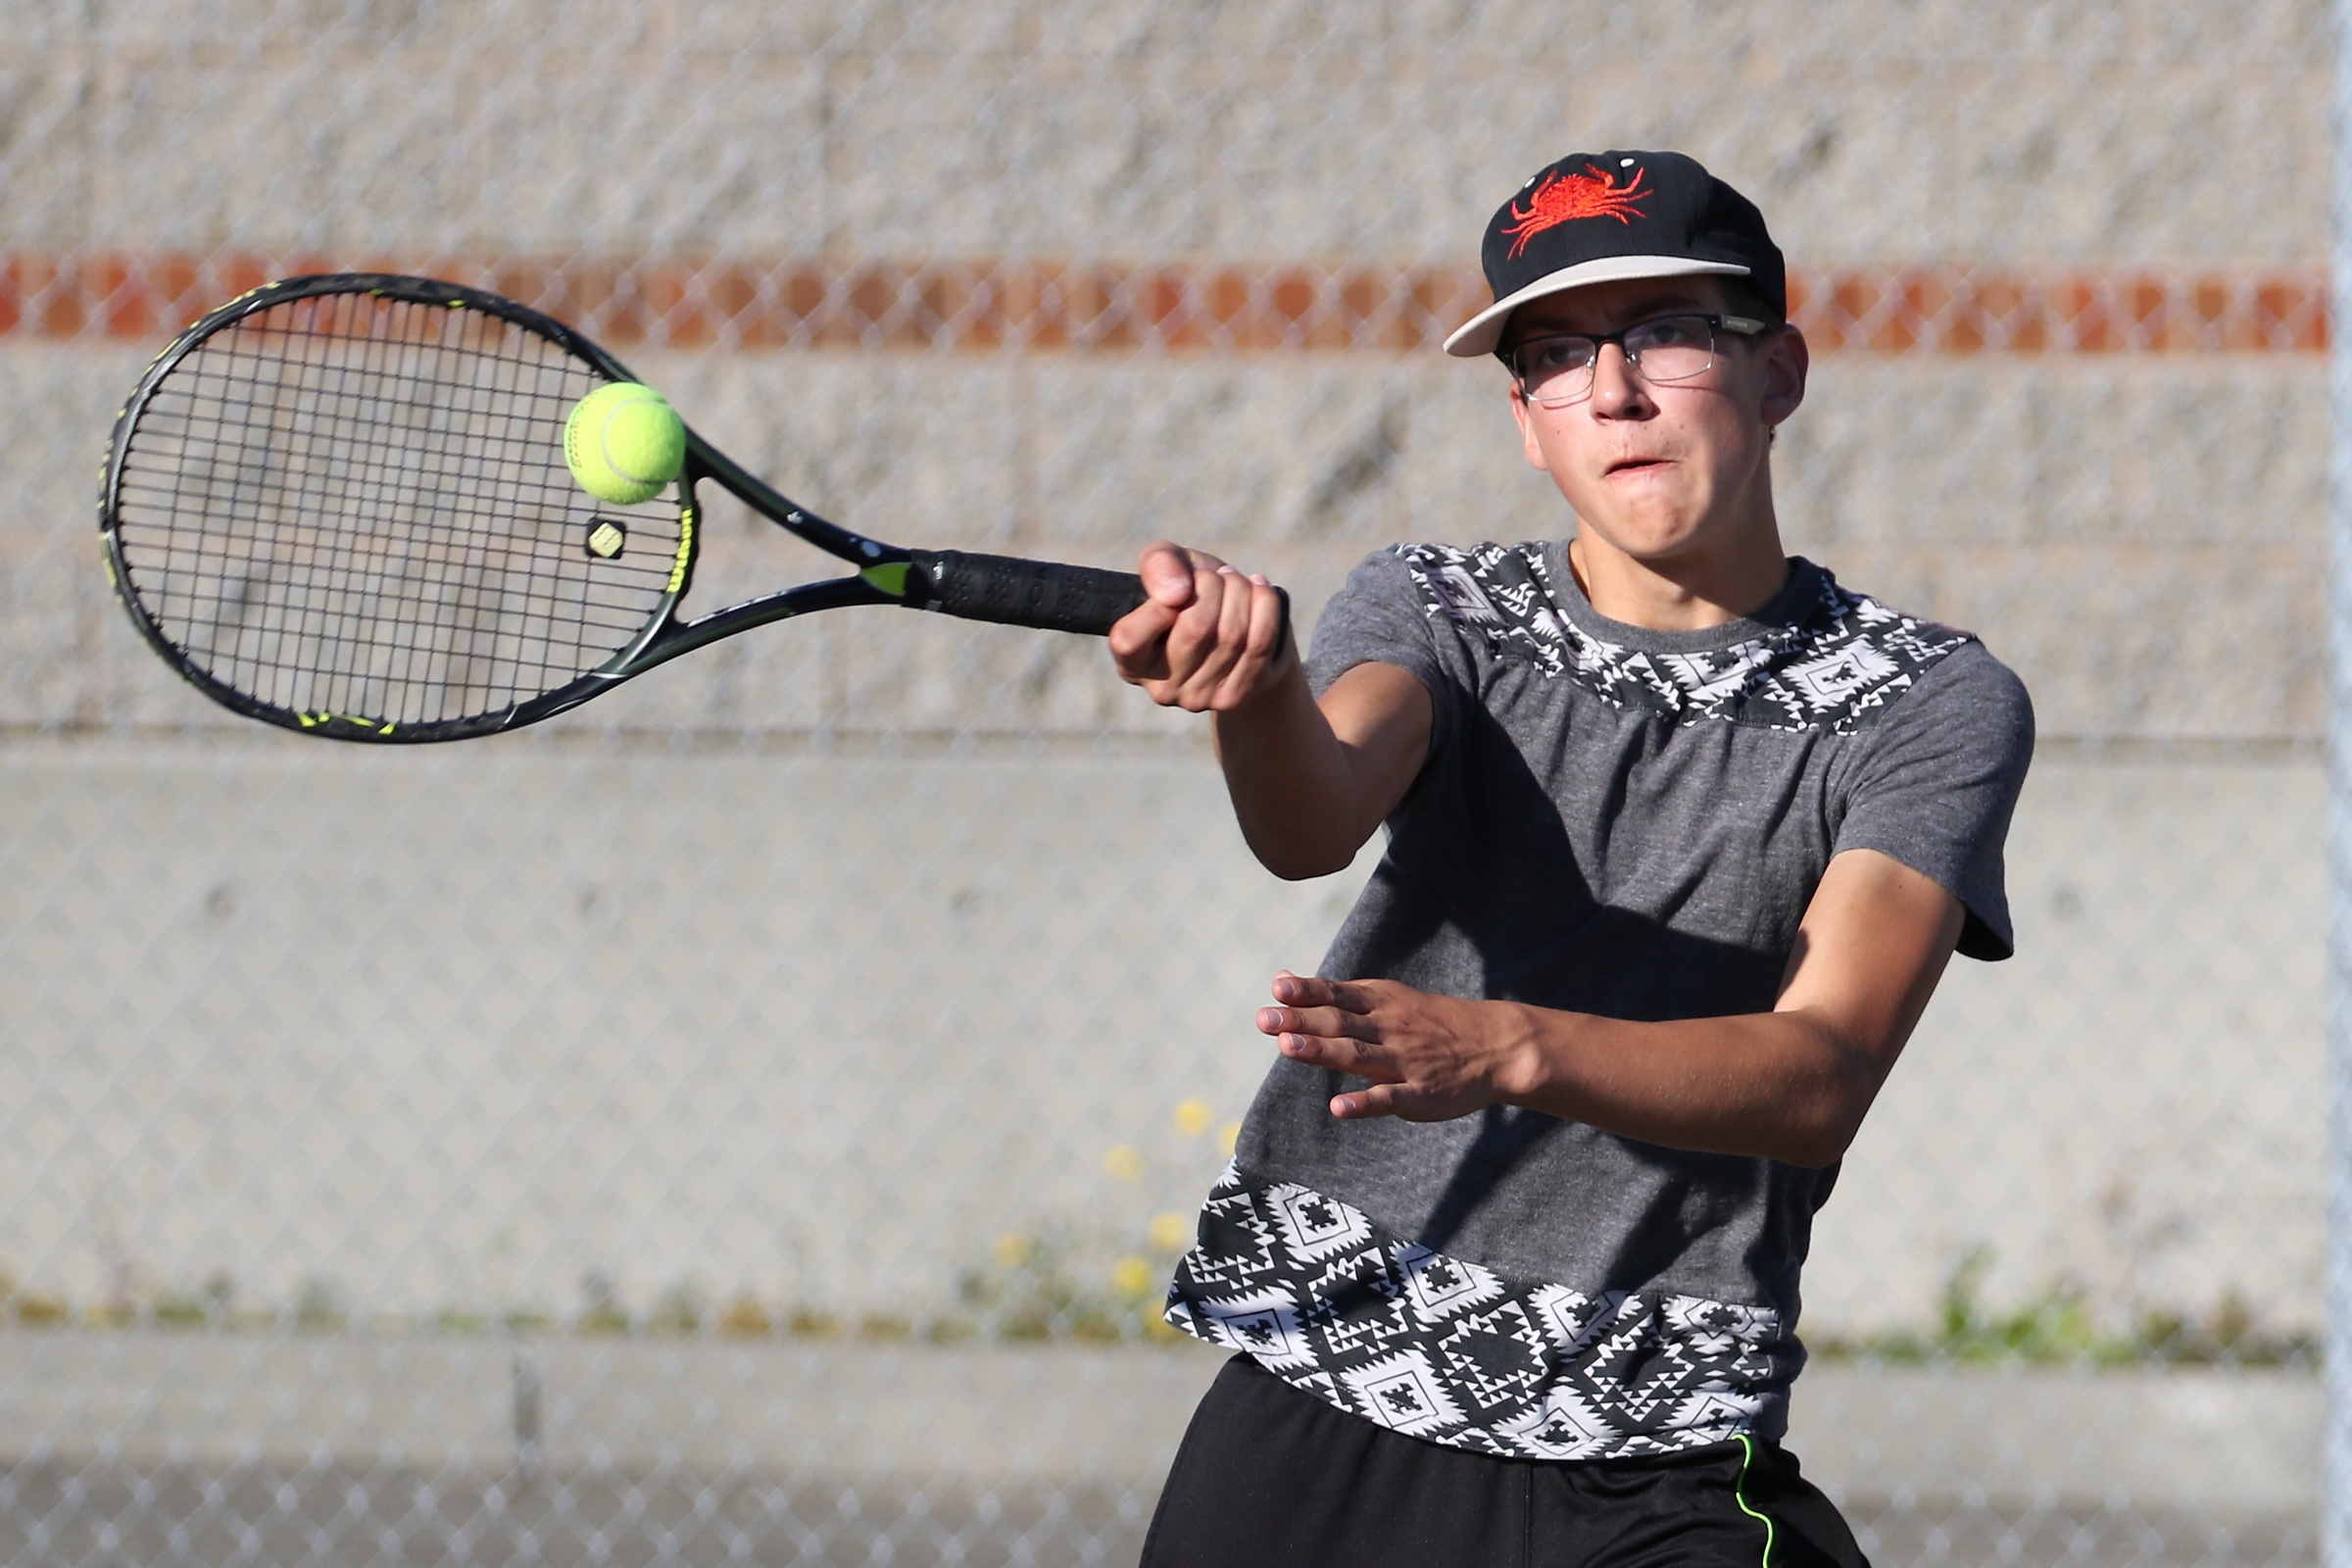 chimacum single personals The chimacum girls' tennis team weathered a week of mixed fortunes, starting with a 5-2 home court win may 1 against the klahowya eagles, before being narrowly edged out 4-3.